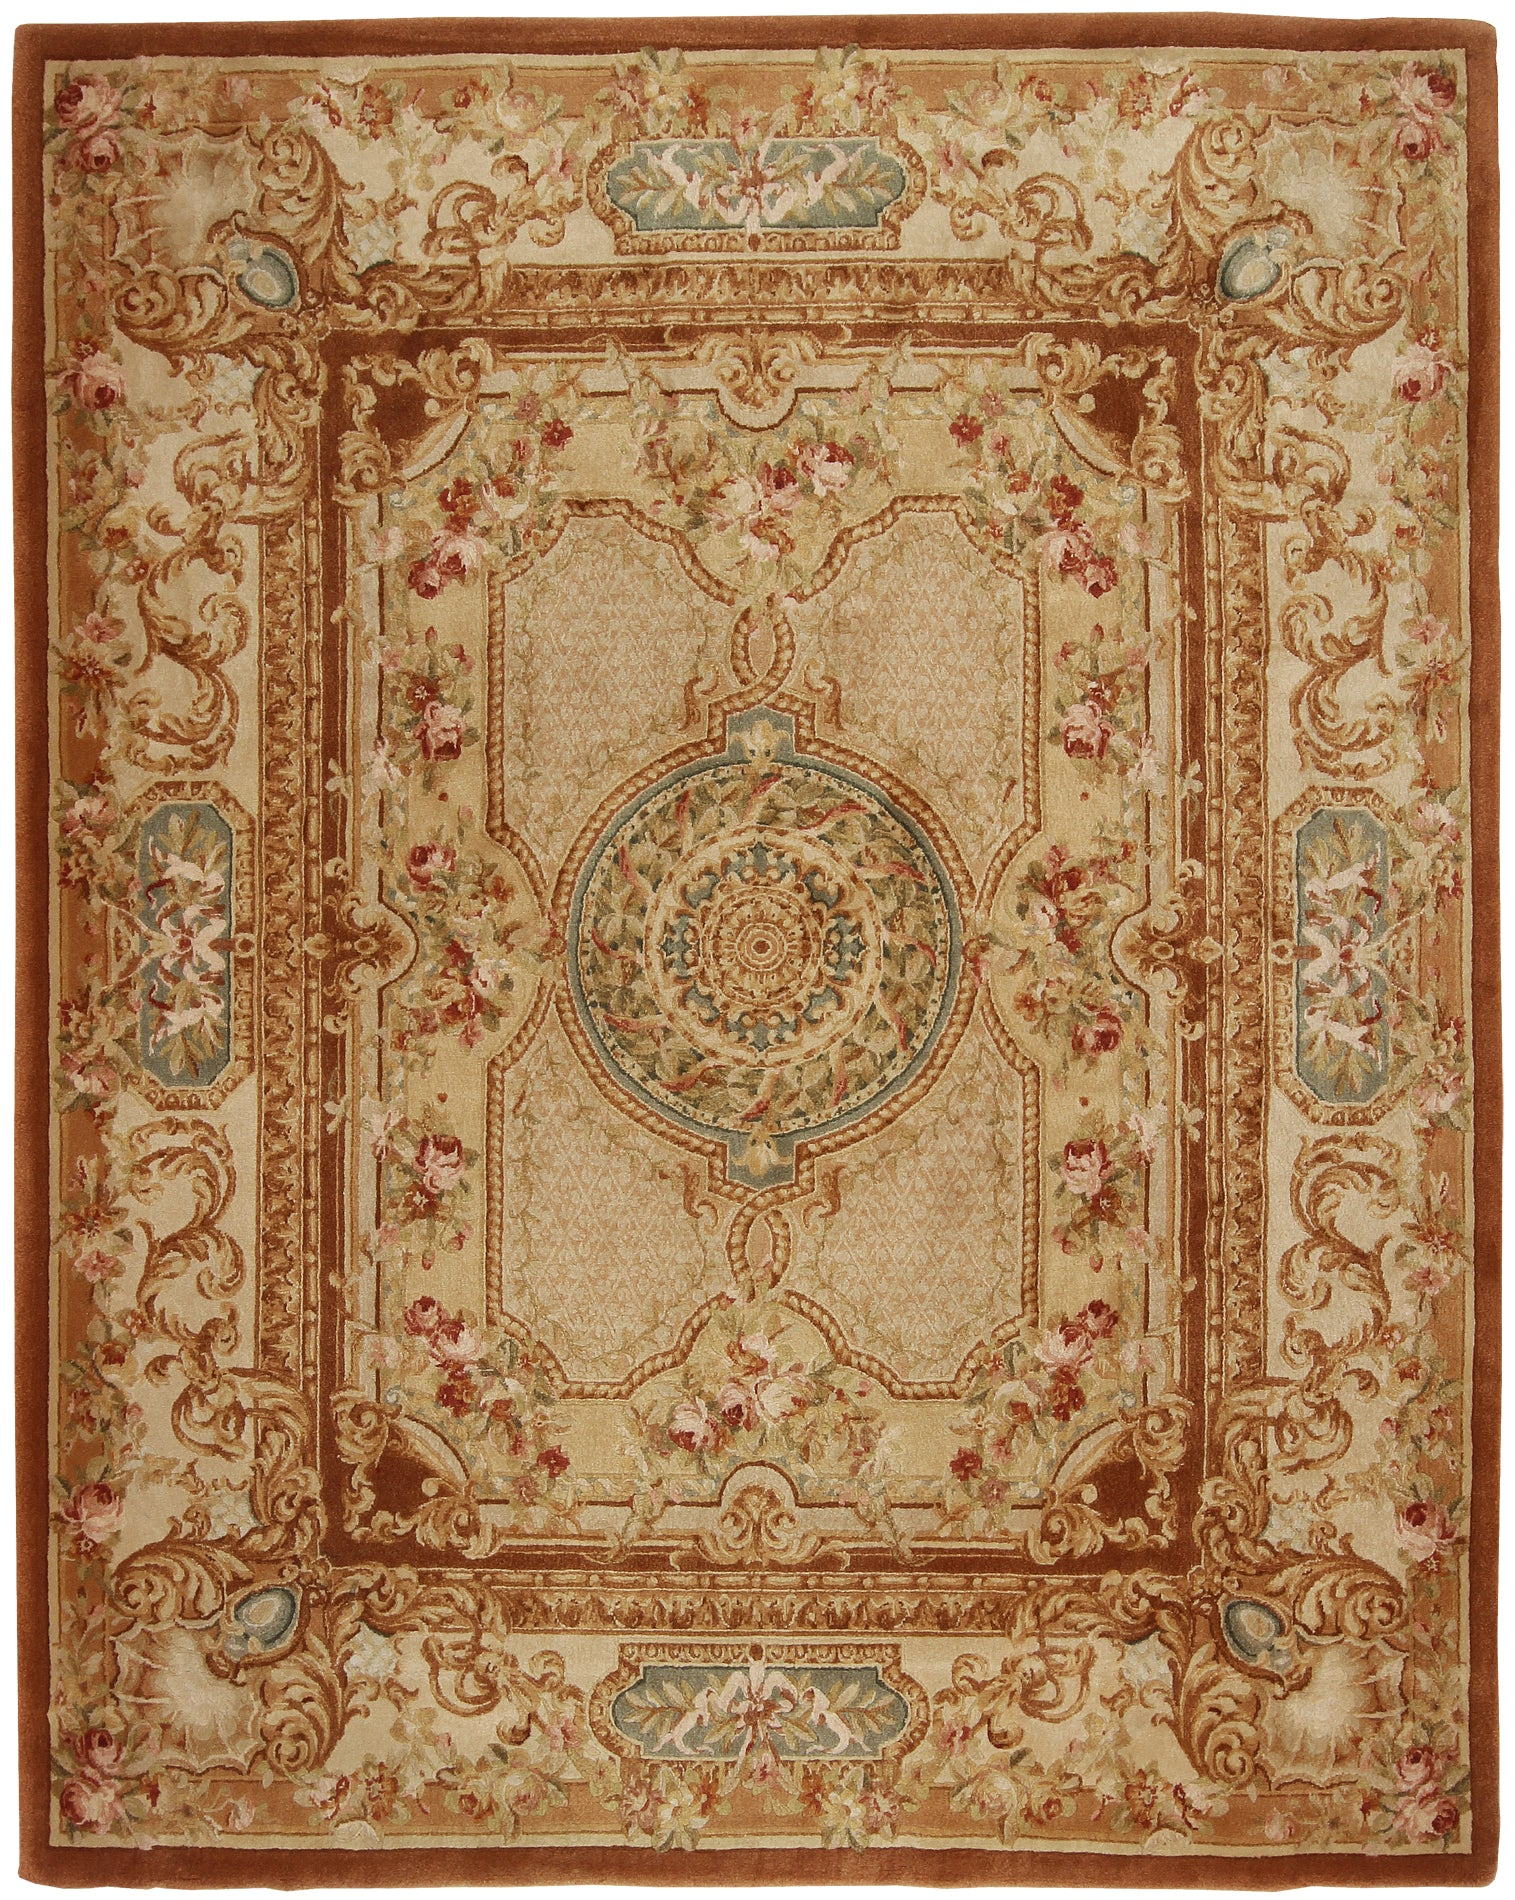 Savonnerie Rug Design China-Turco Persian Rug Company Inc.